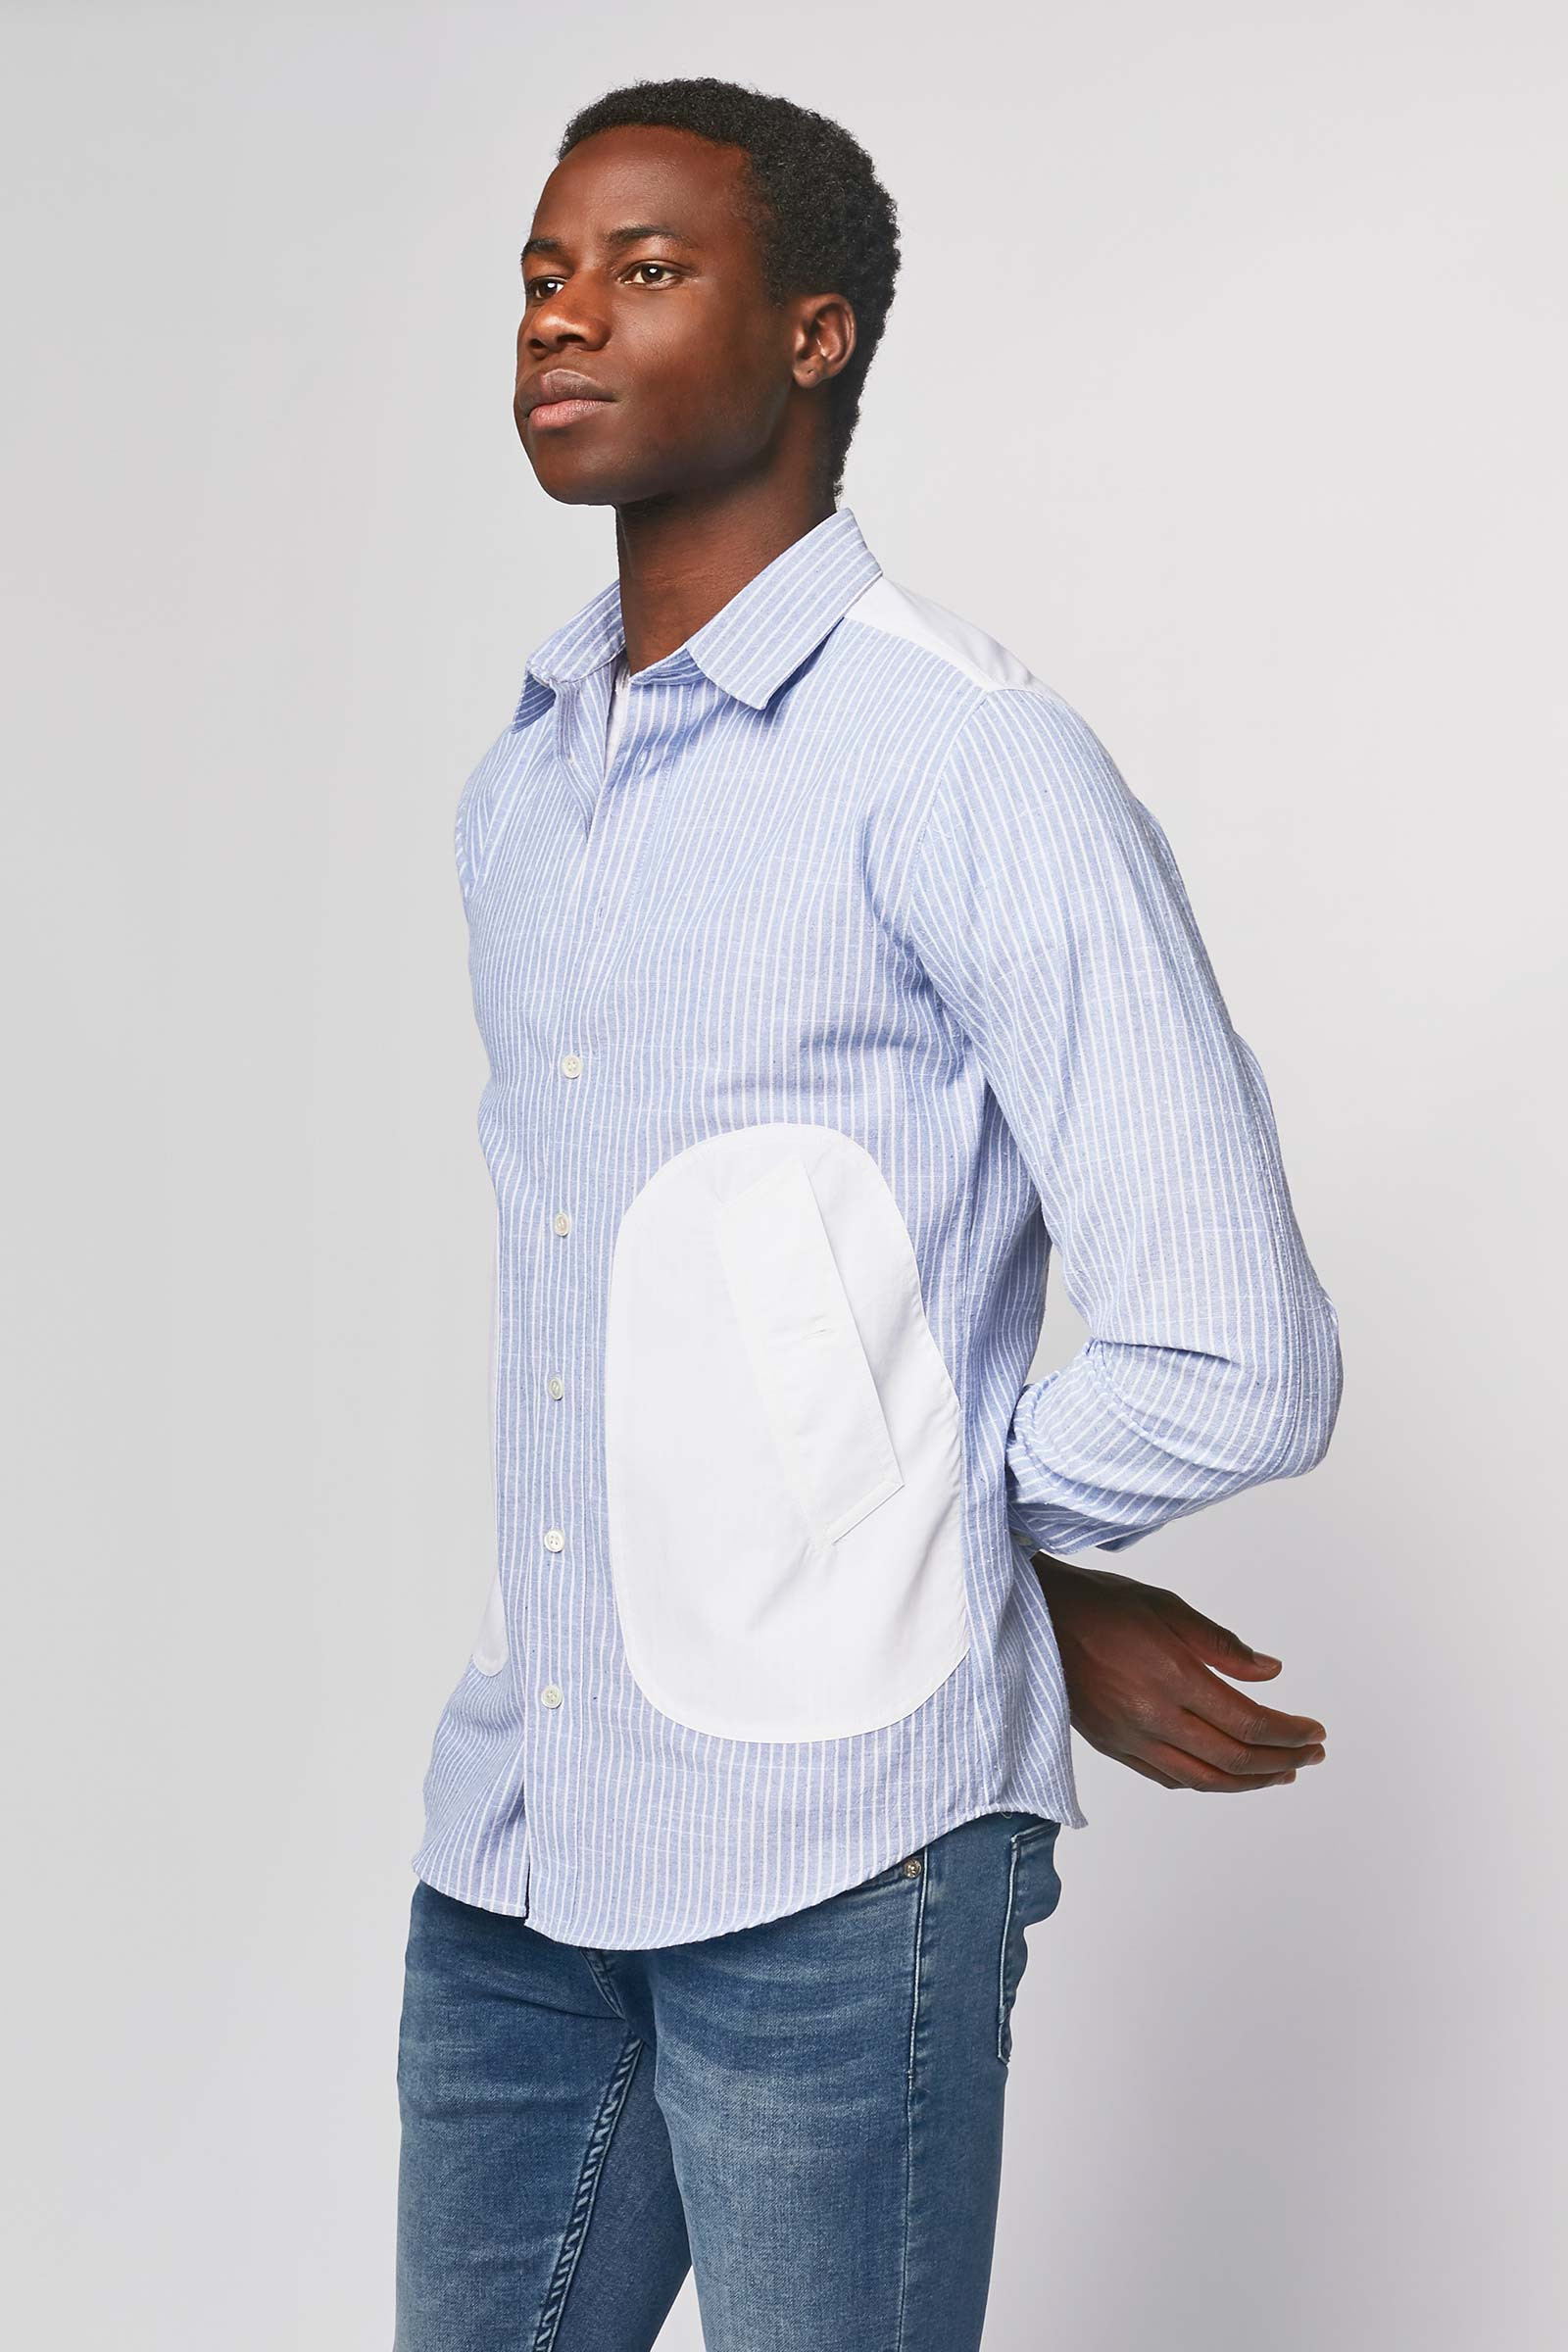 Torn blue shirt with side pockets front